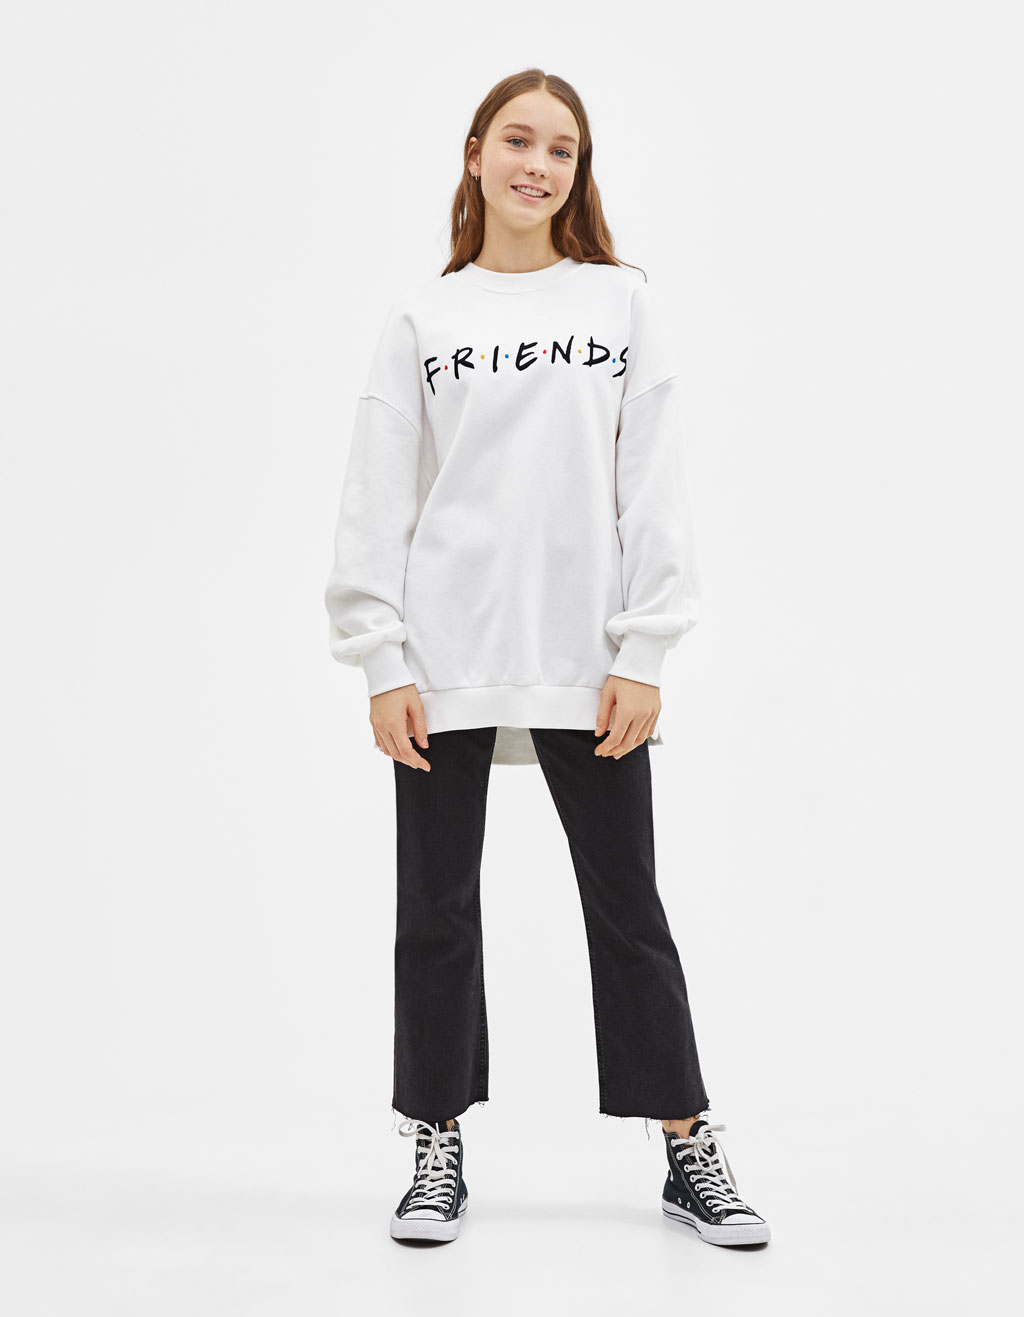 'Friends' sweatshirt